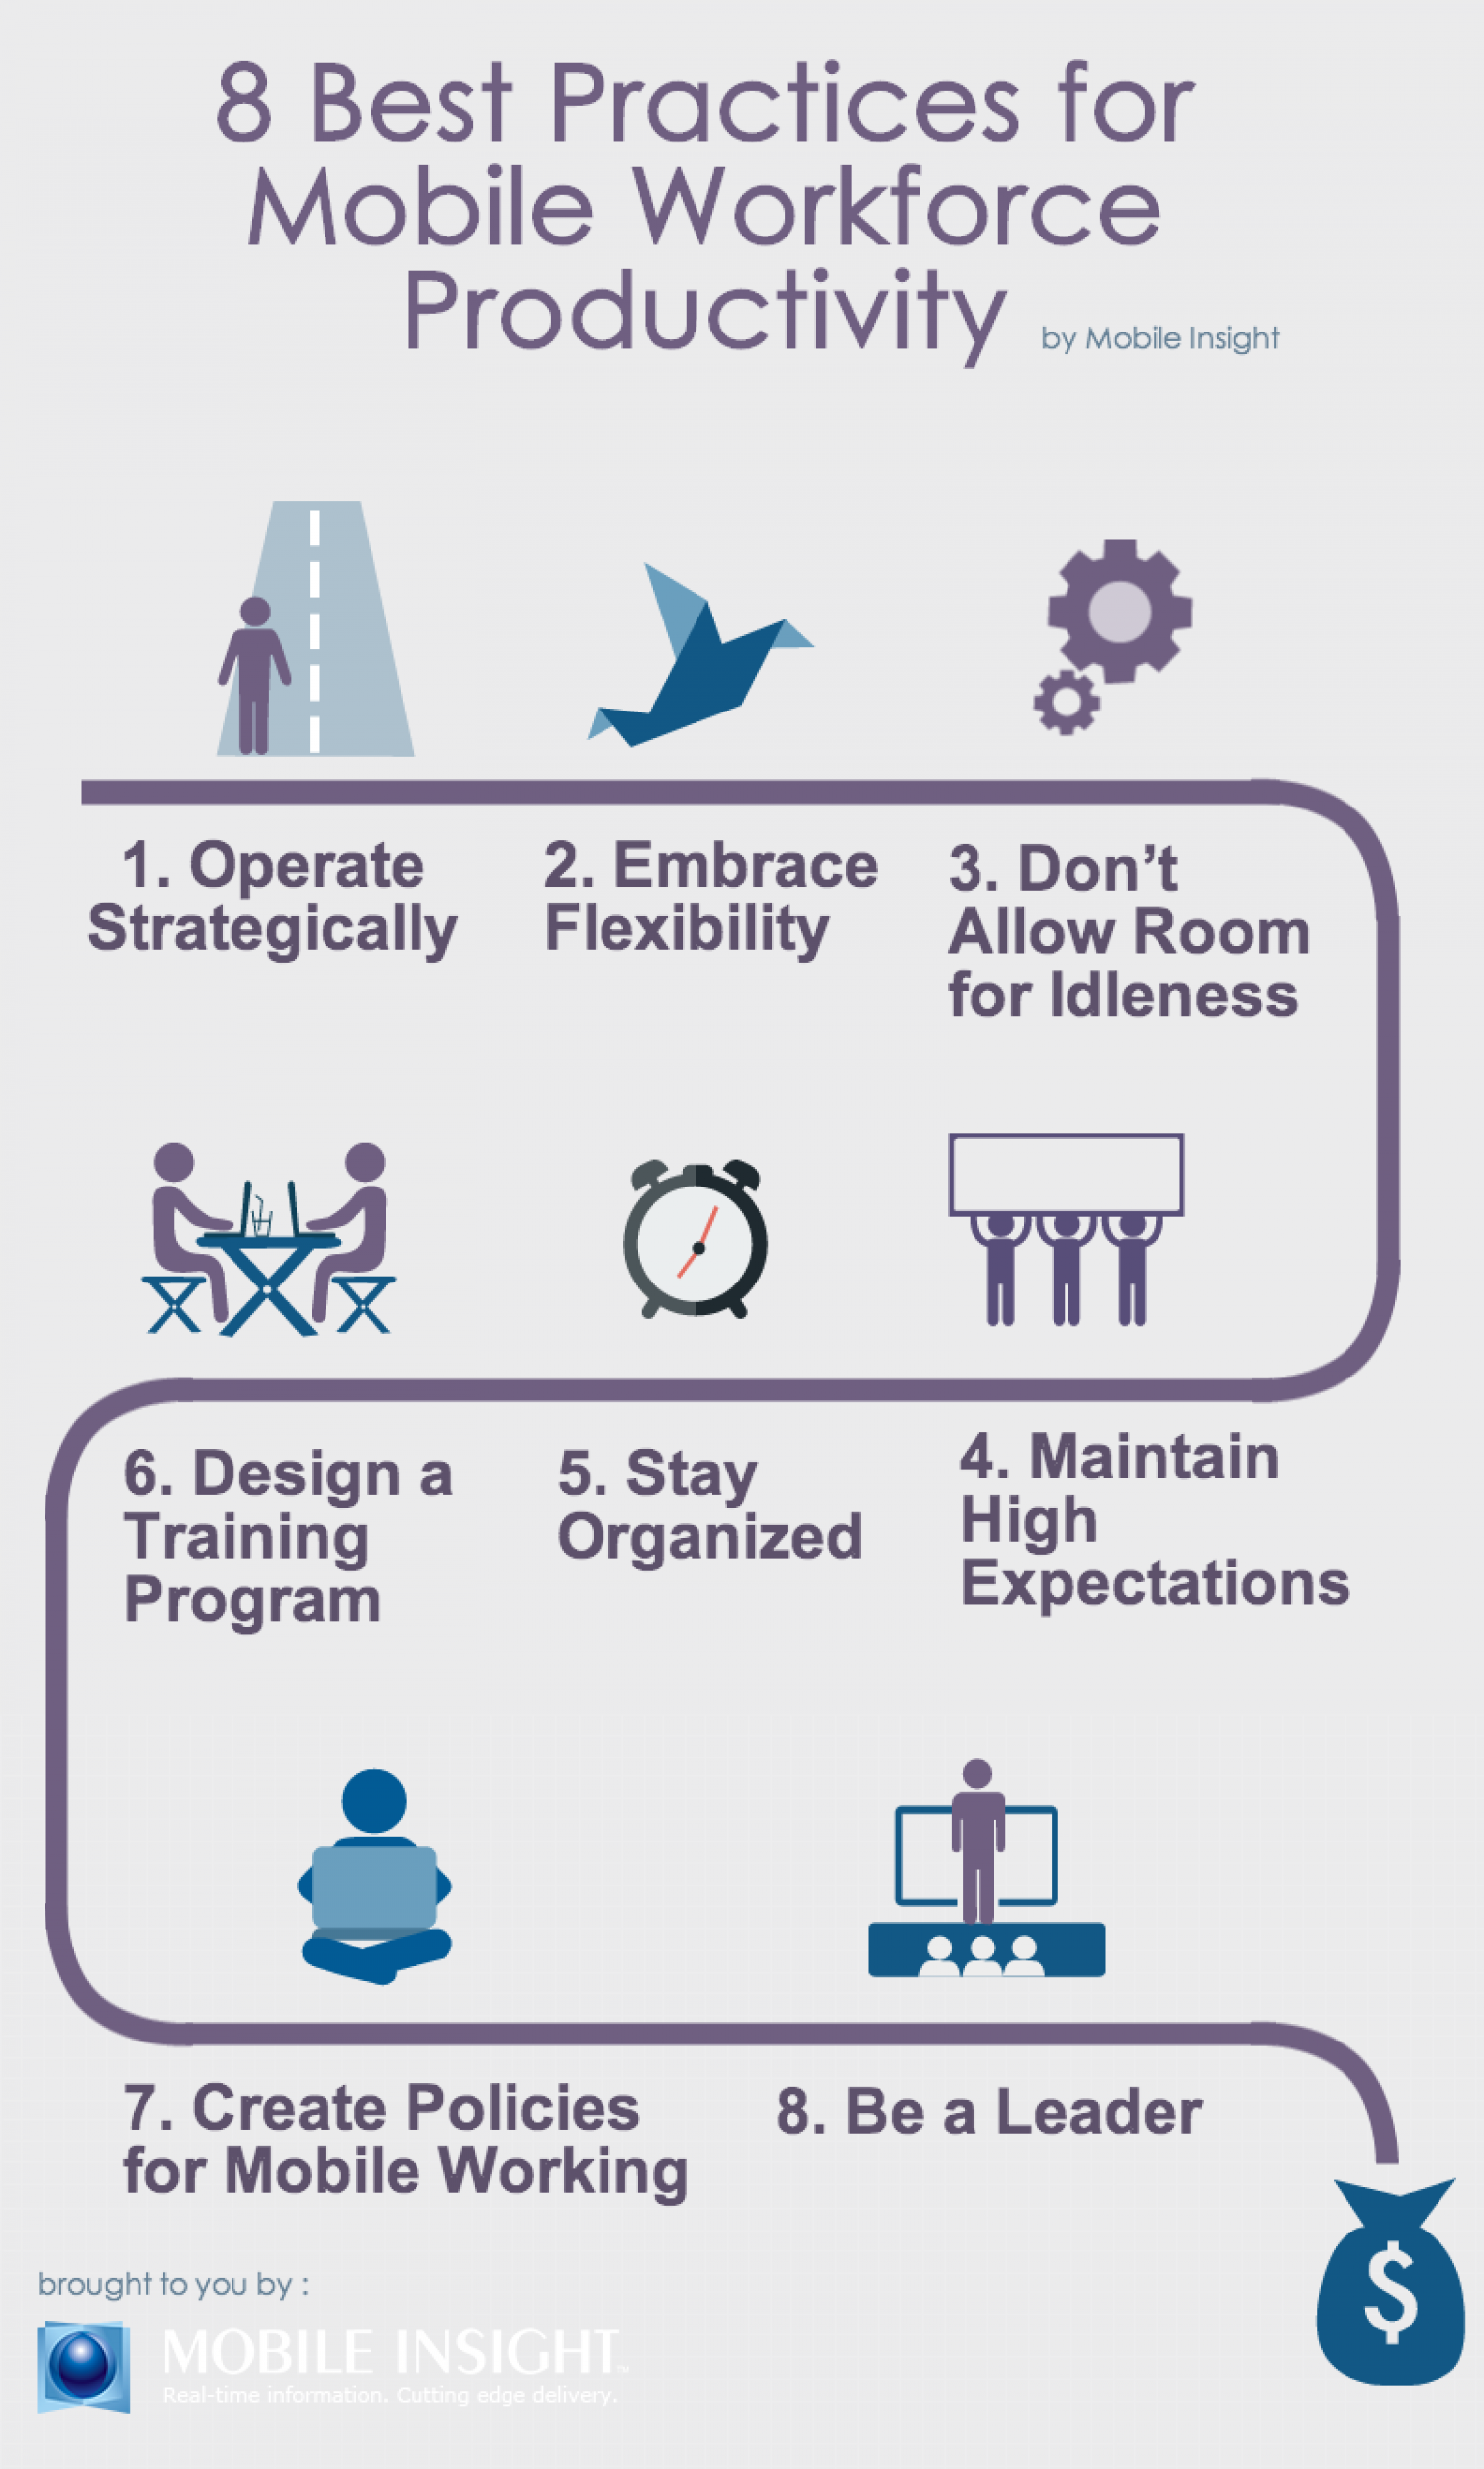 8 Best Practices for Mobile Workforce Productivity Infographic